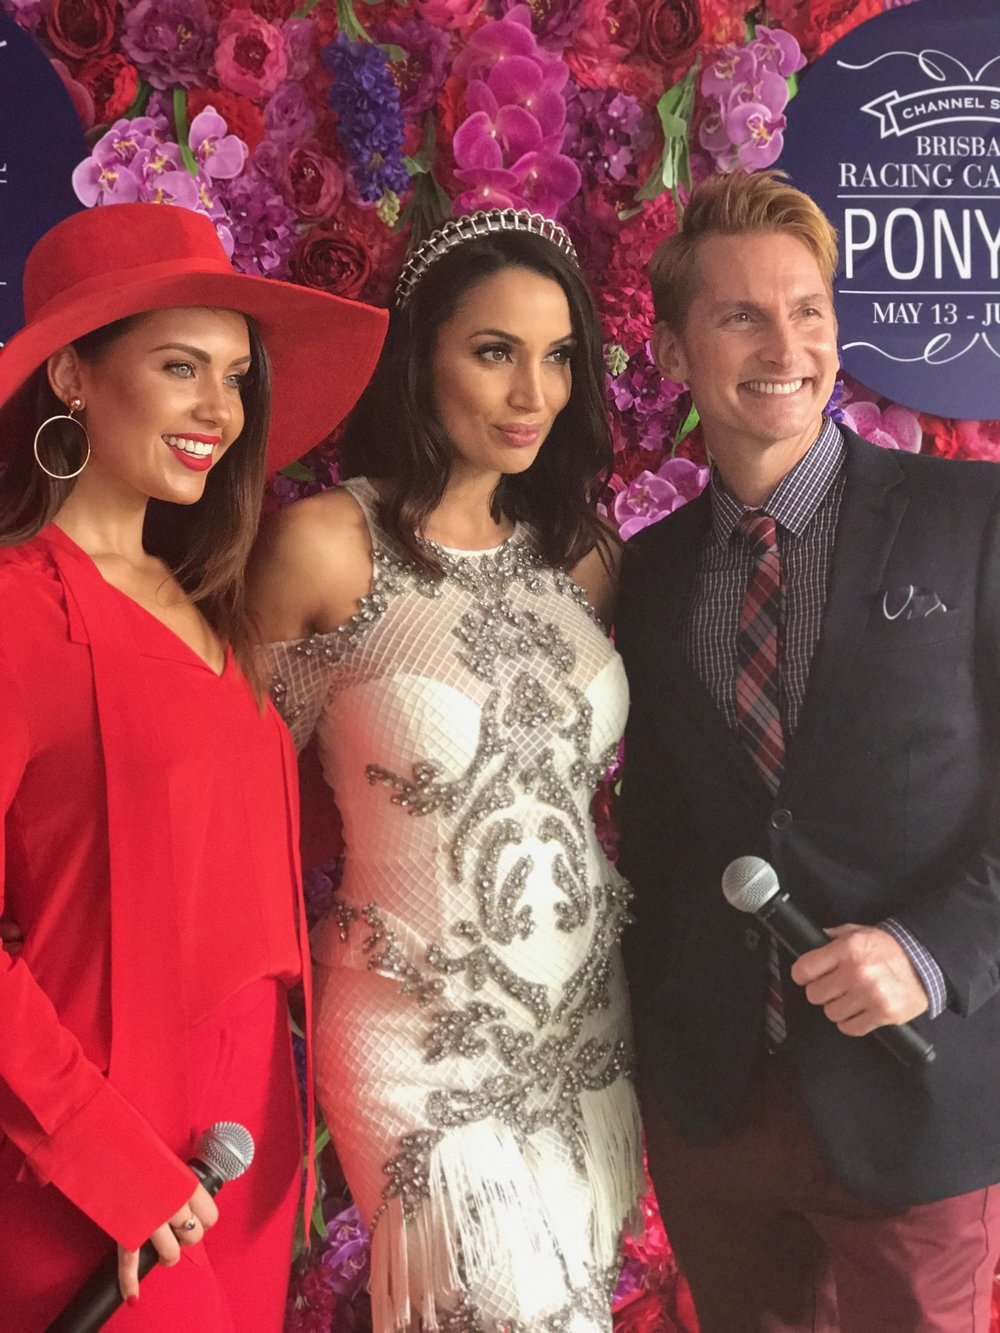 I judged the fashions on the field with the help of these beautiful people, Courtney Thorpe & Damien Rossie.